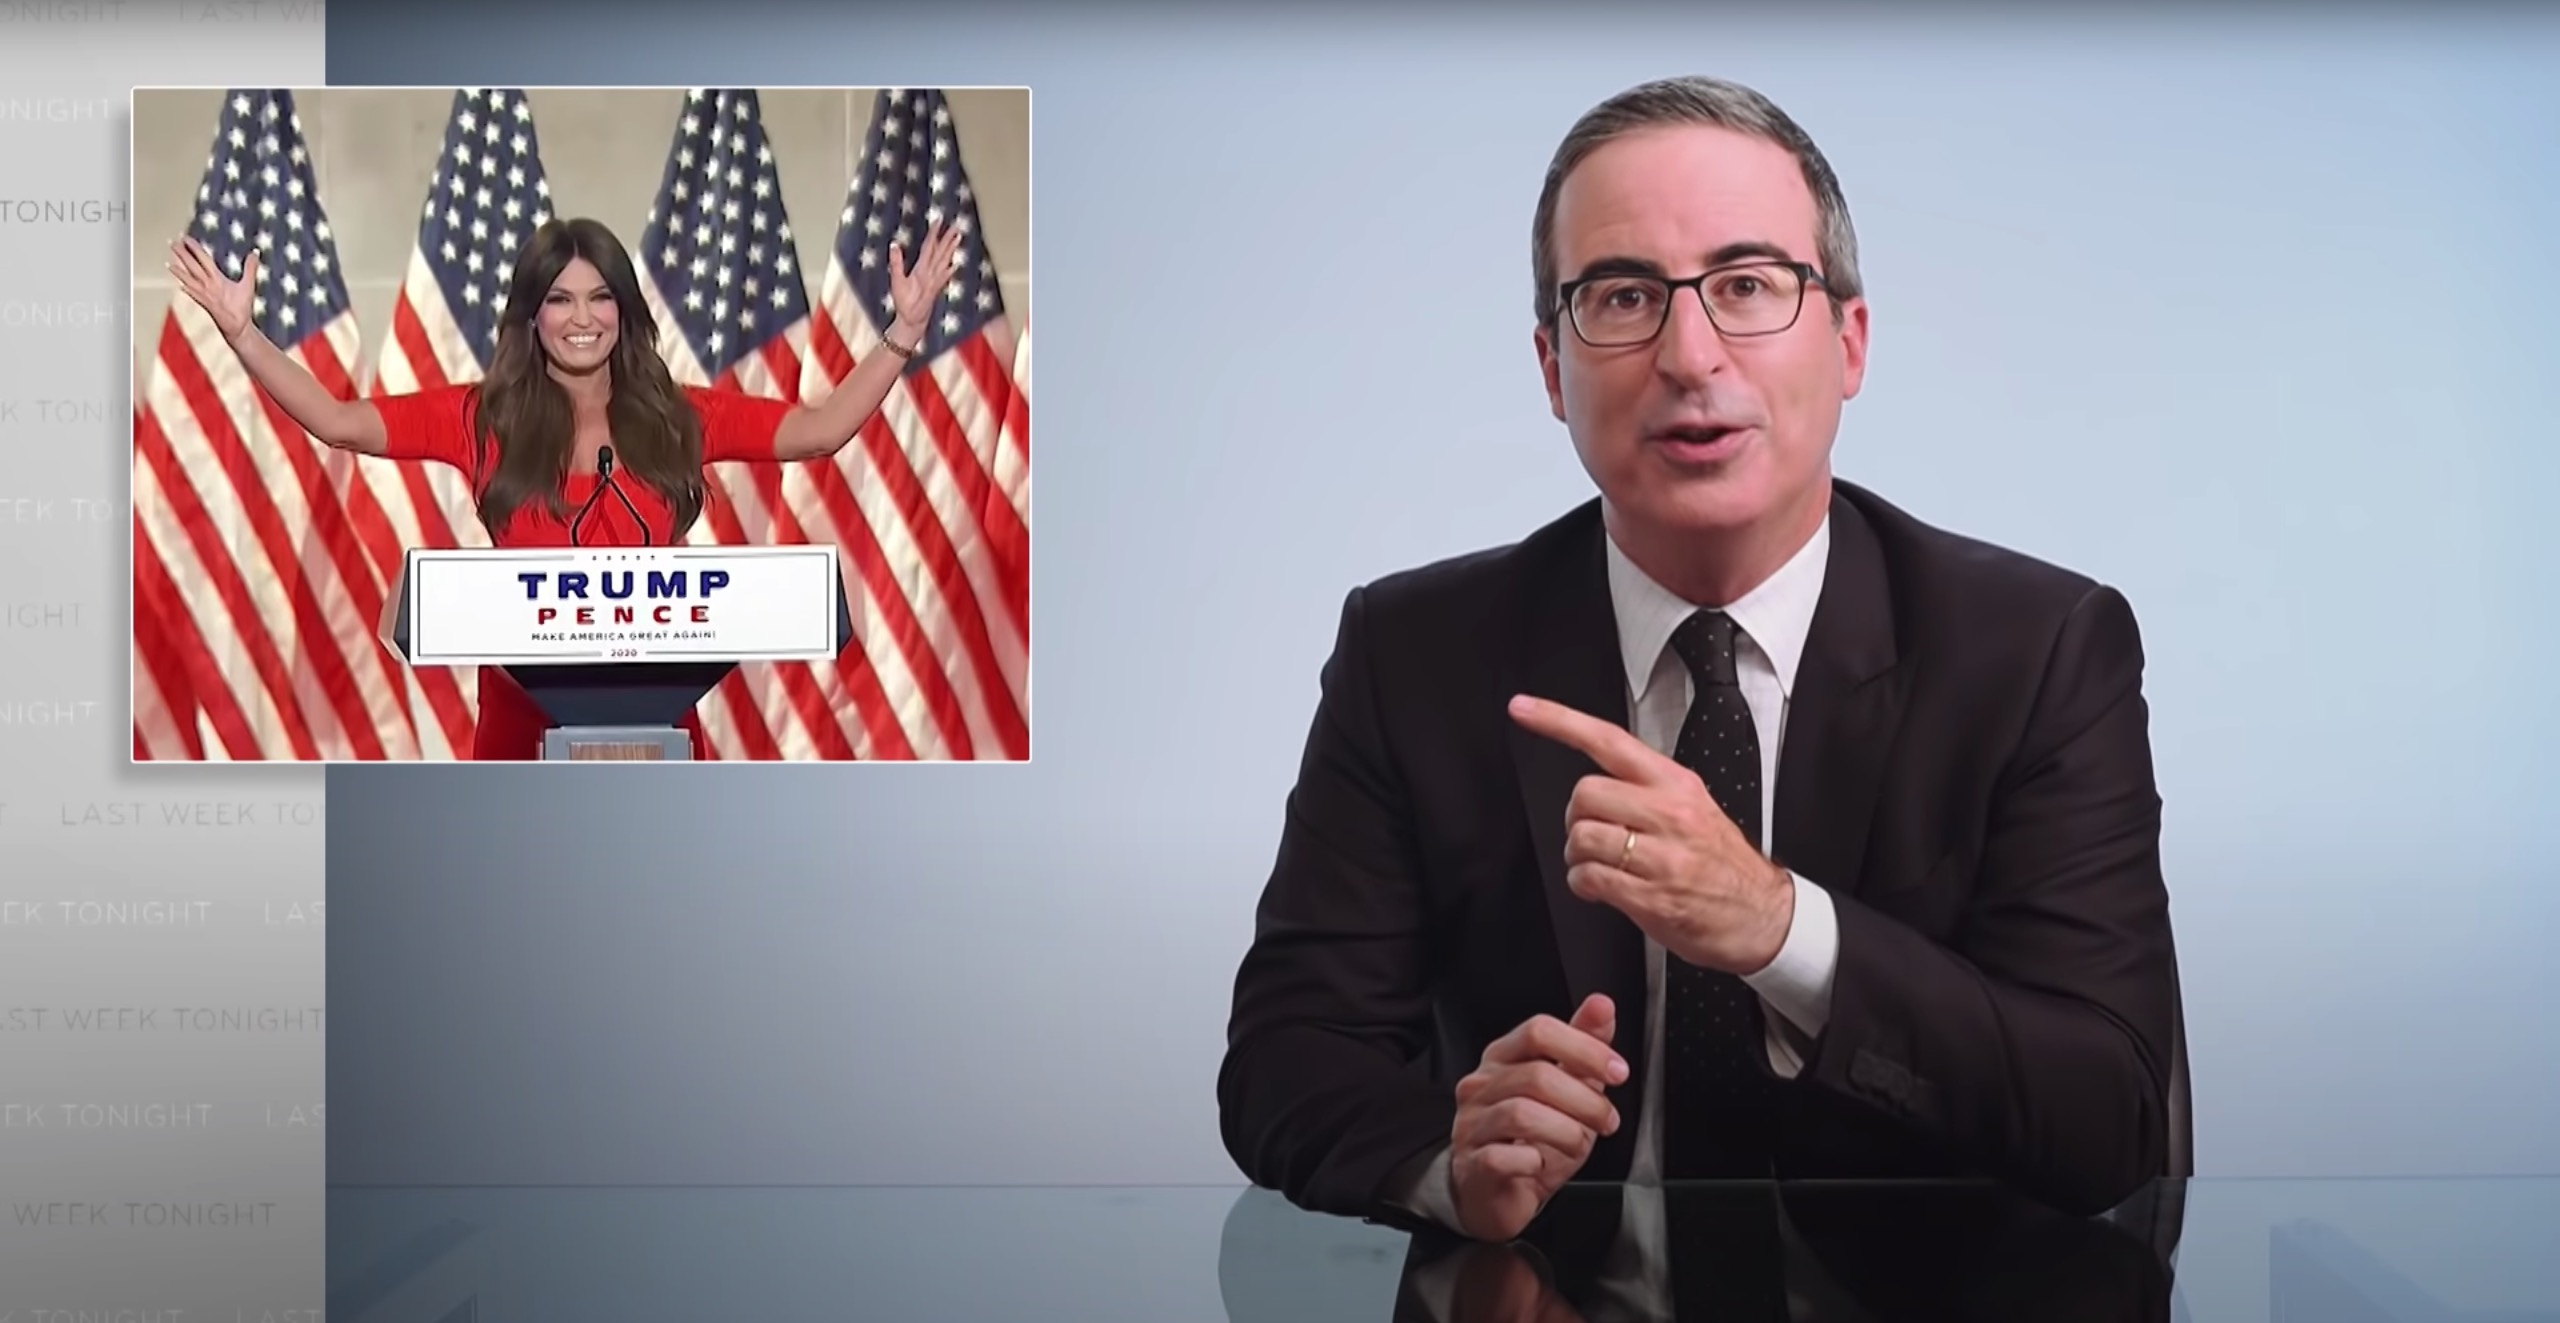 John Oliver Points Fingers At The Media While Addressing The Kenosha Situation